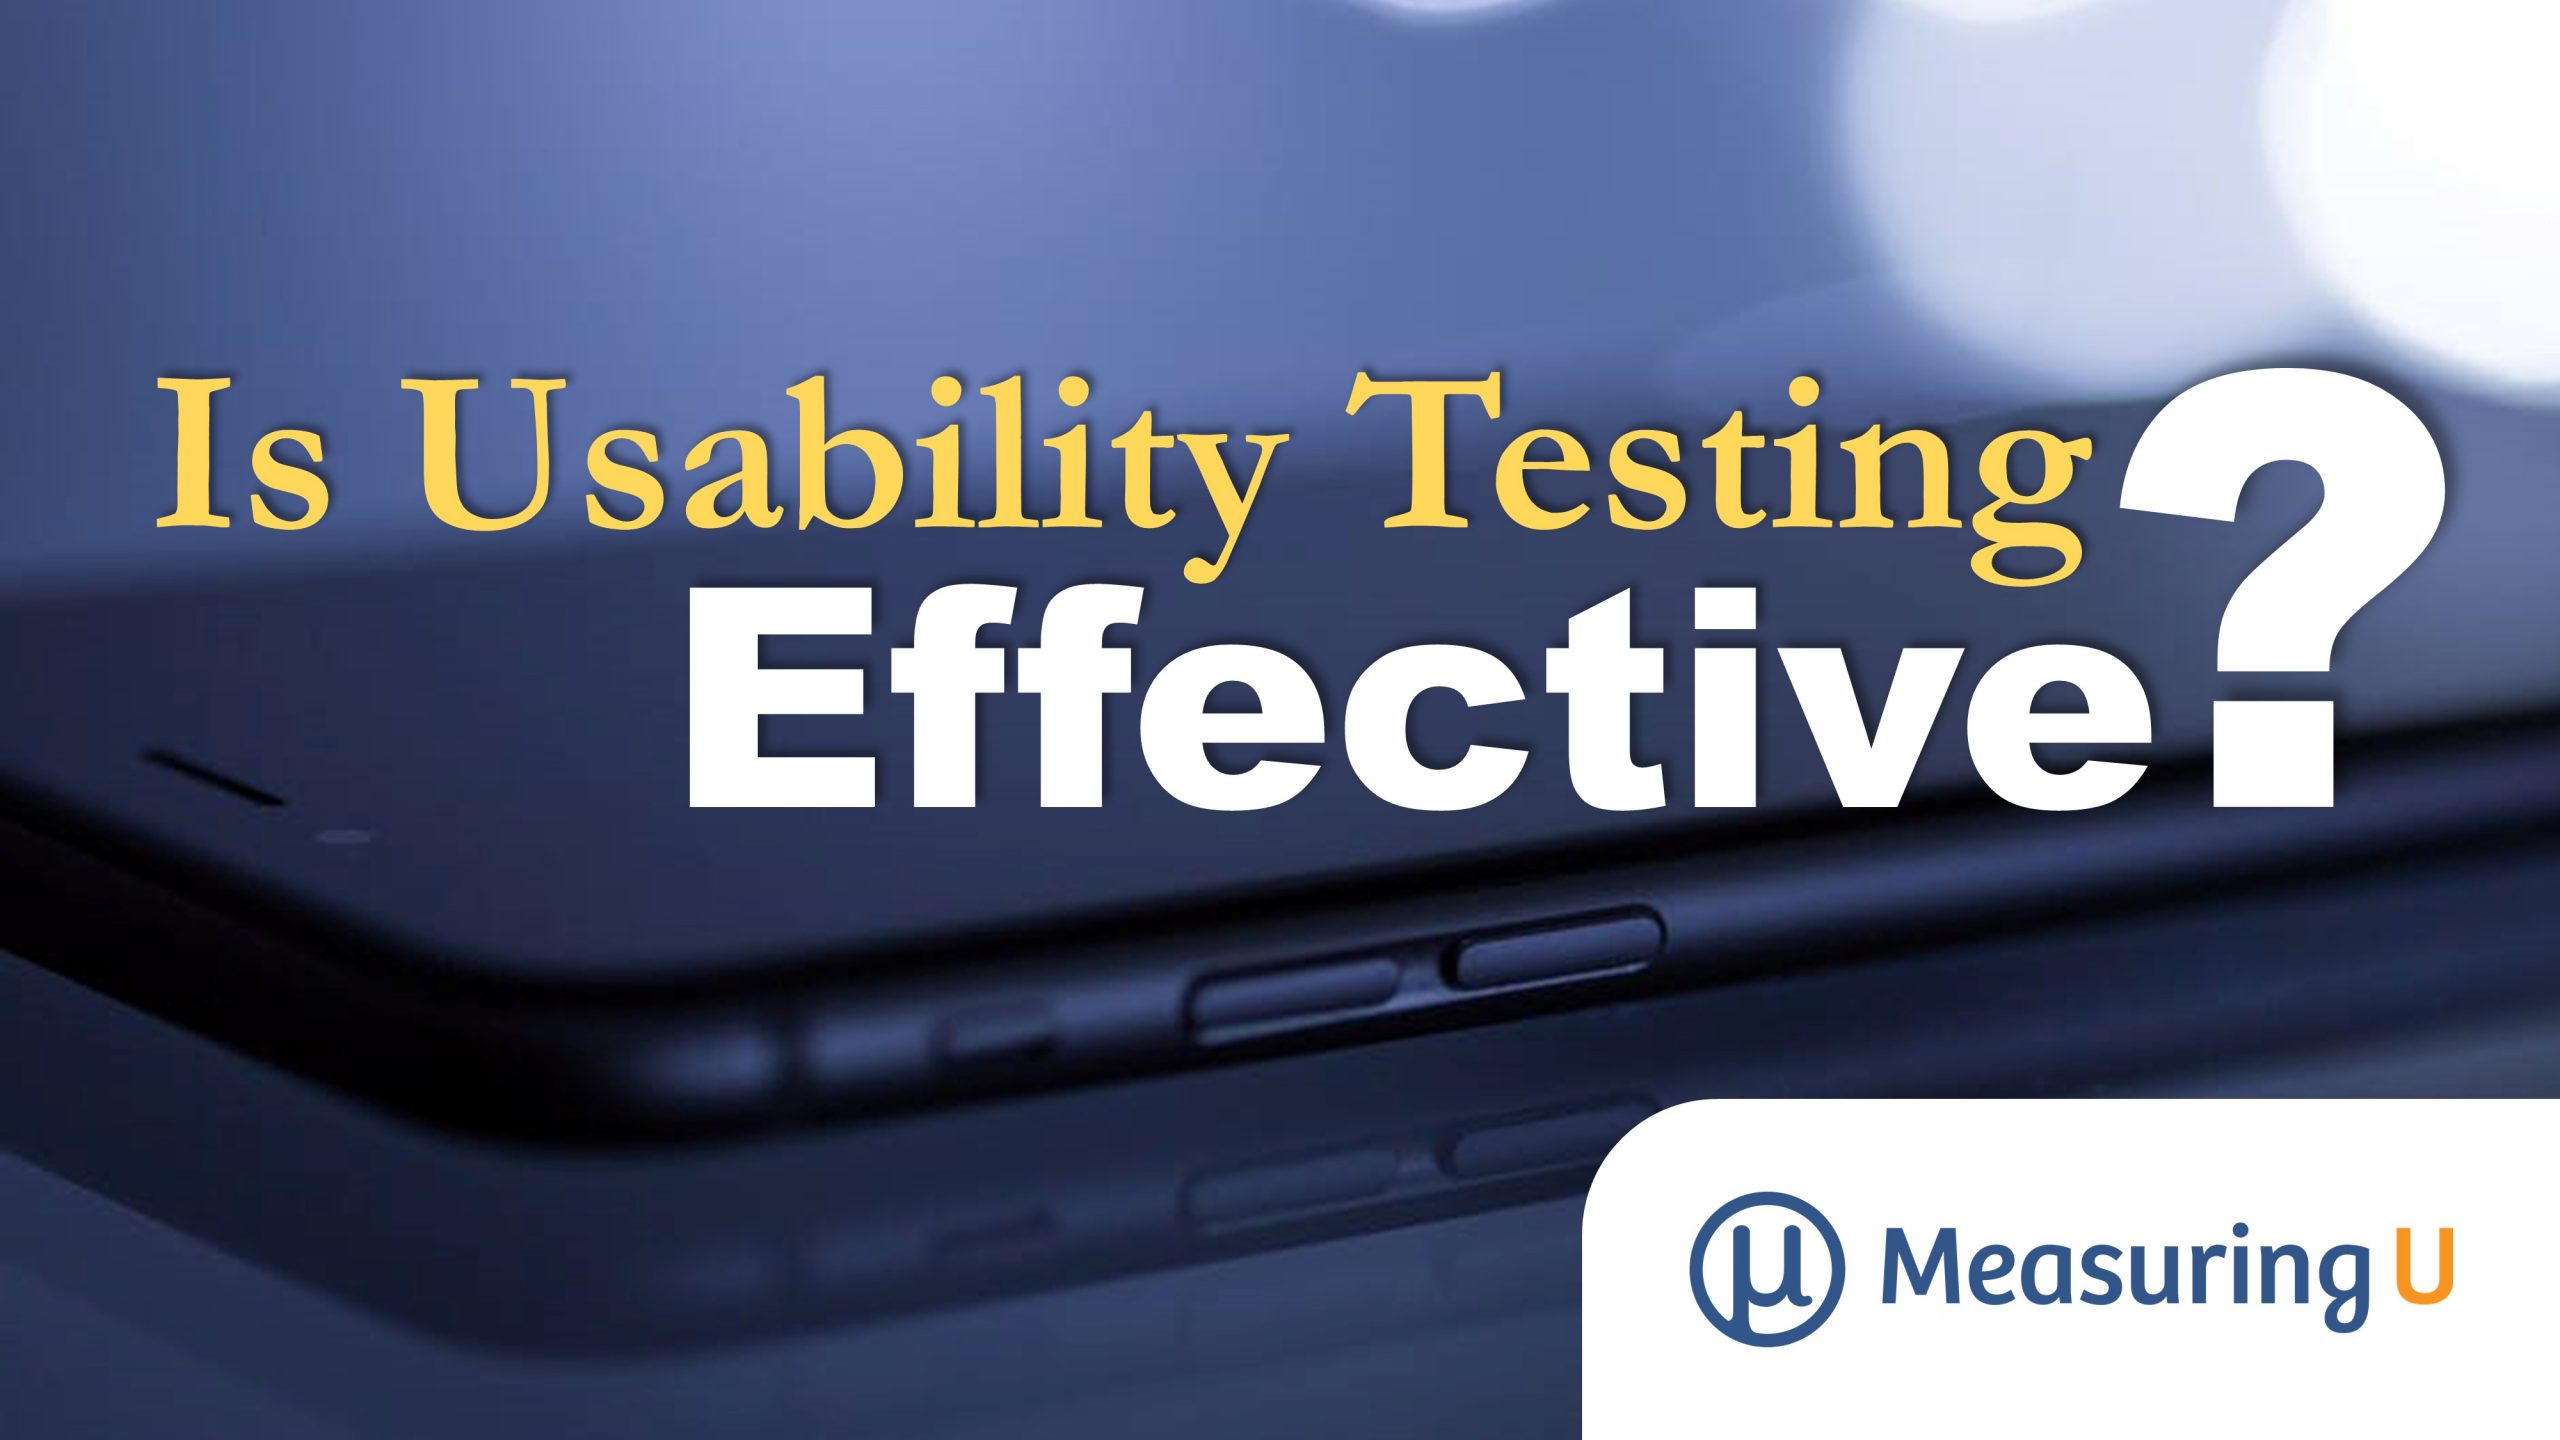 Is Usability Testing Effective?